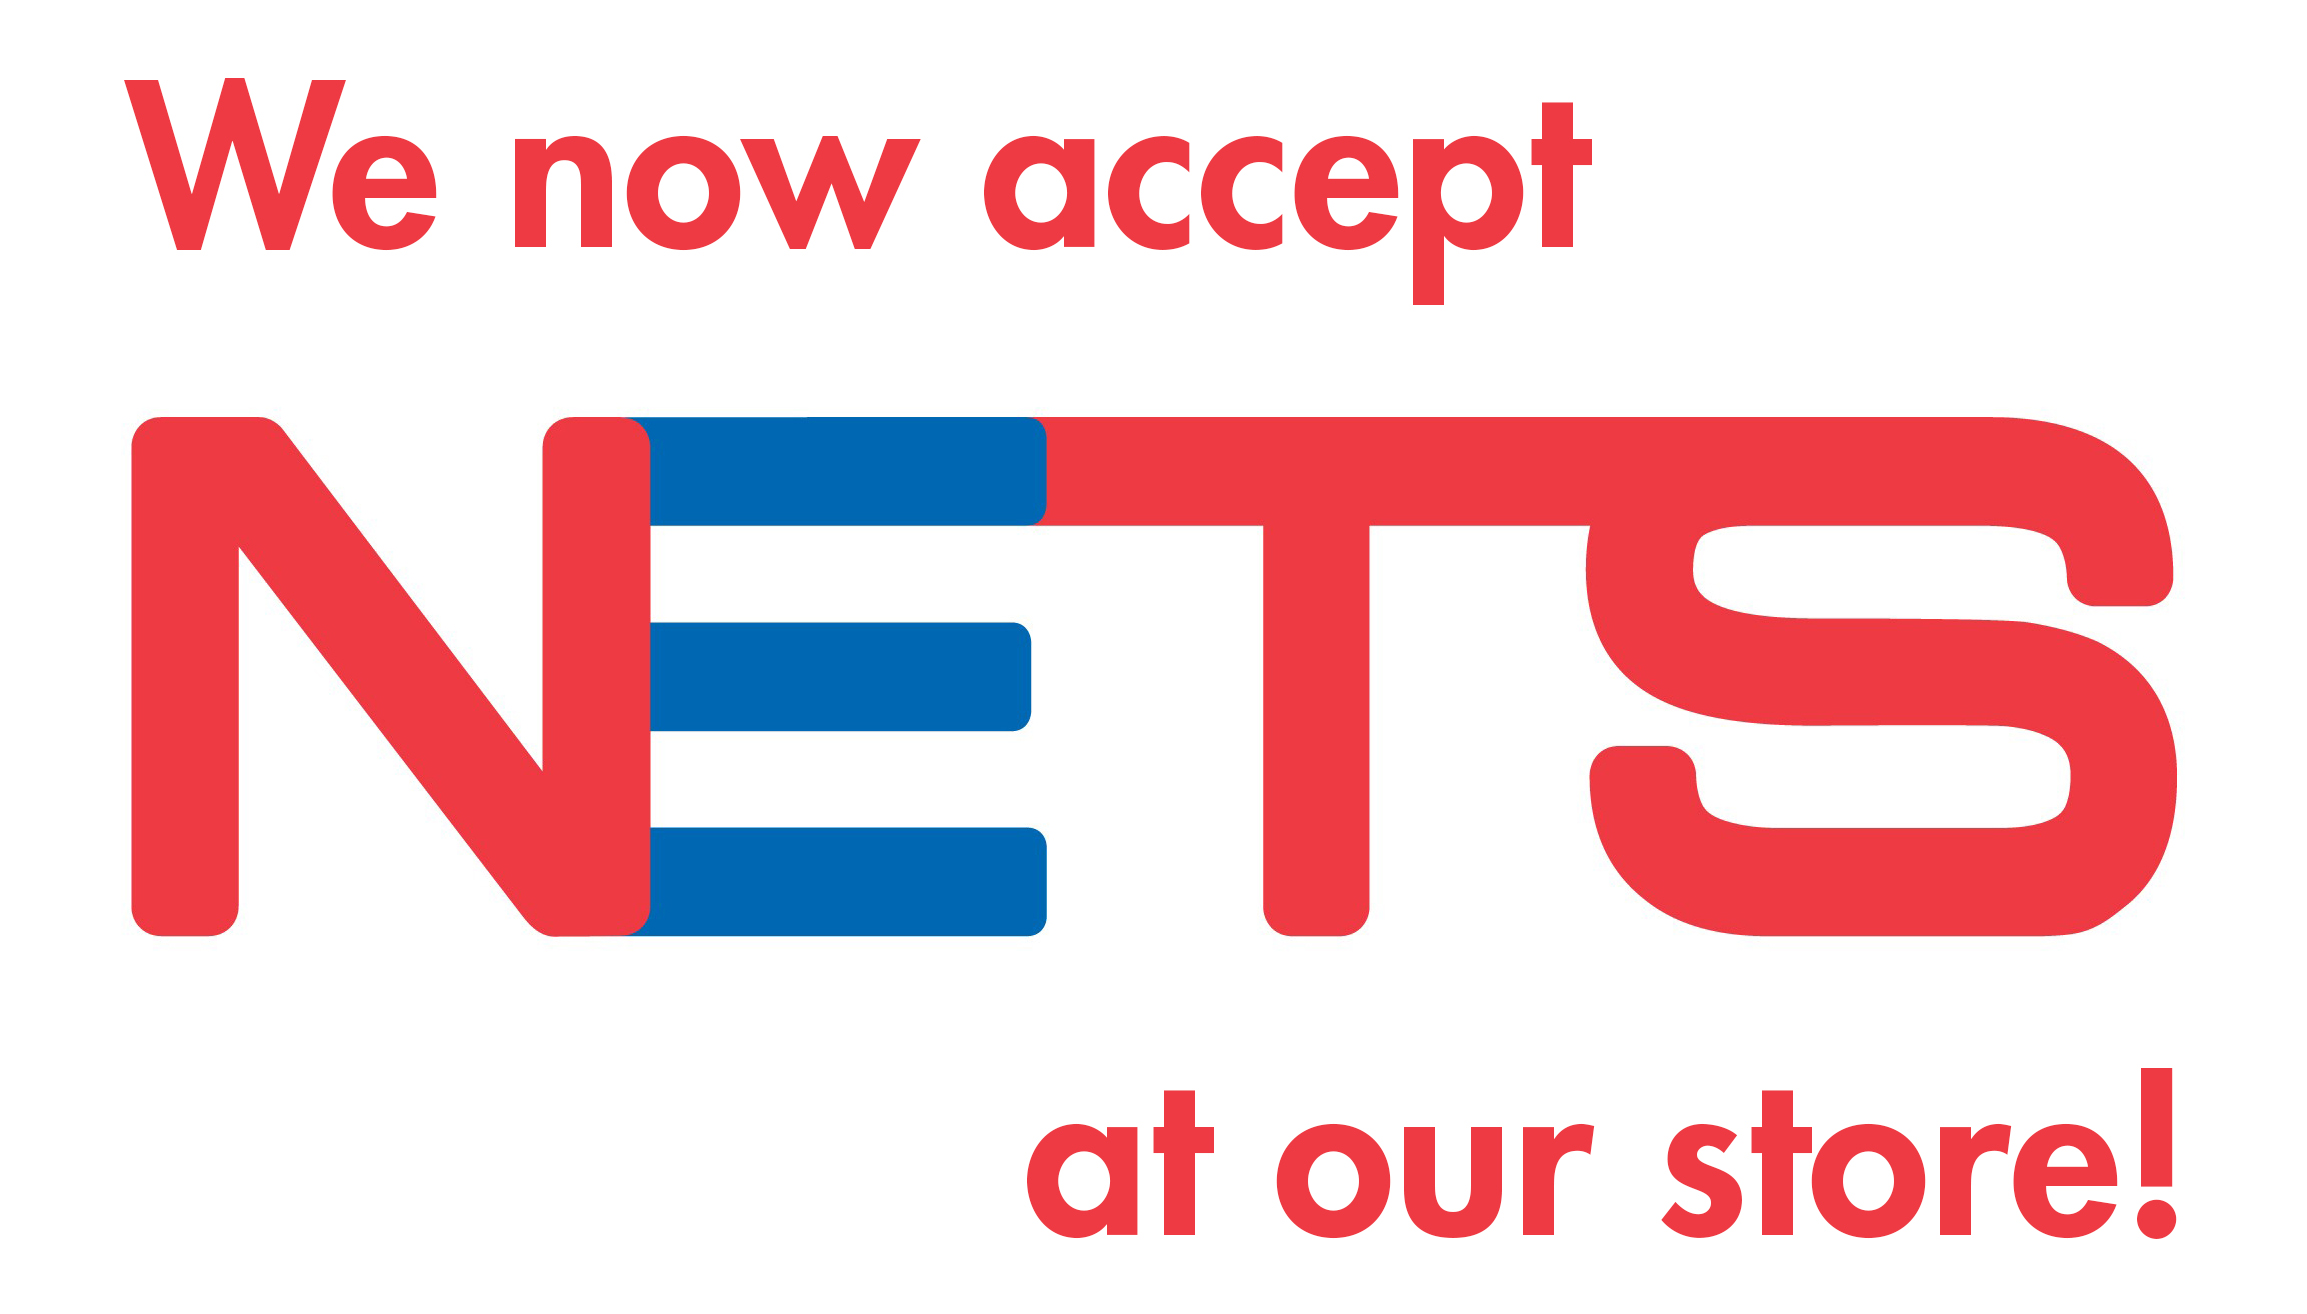 We now accept NETS at our store!